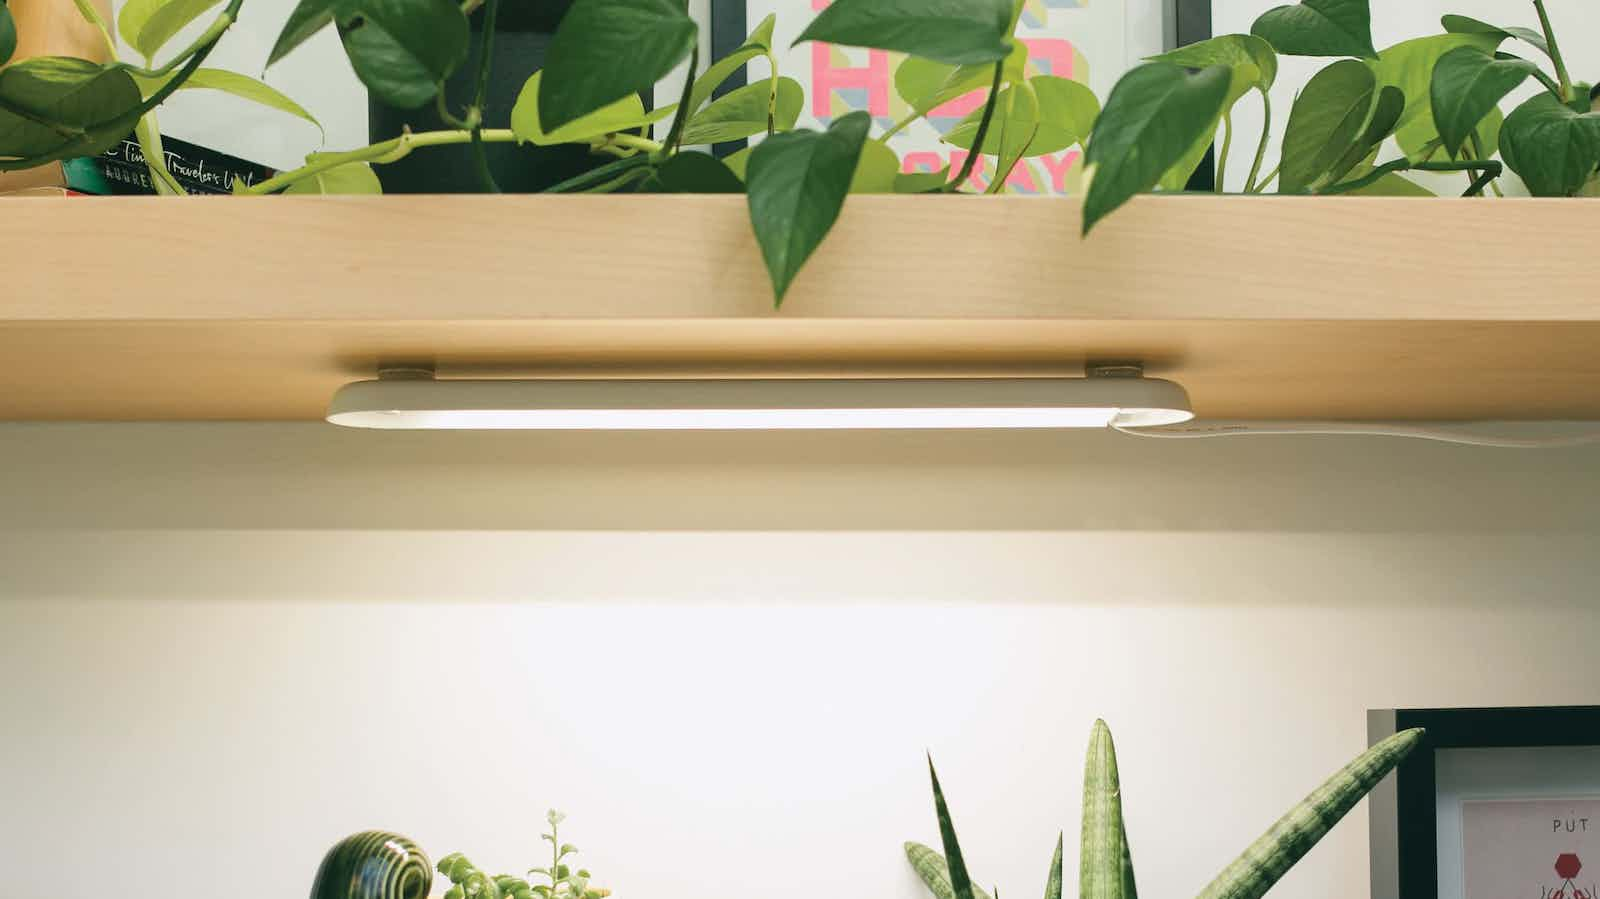 Modern Sprout Smart Growbar plant light offers full-spectrum LEDs for your greenery